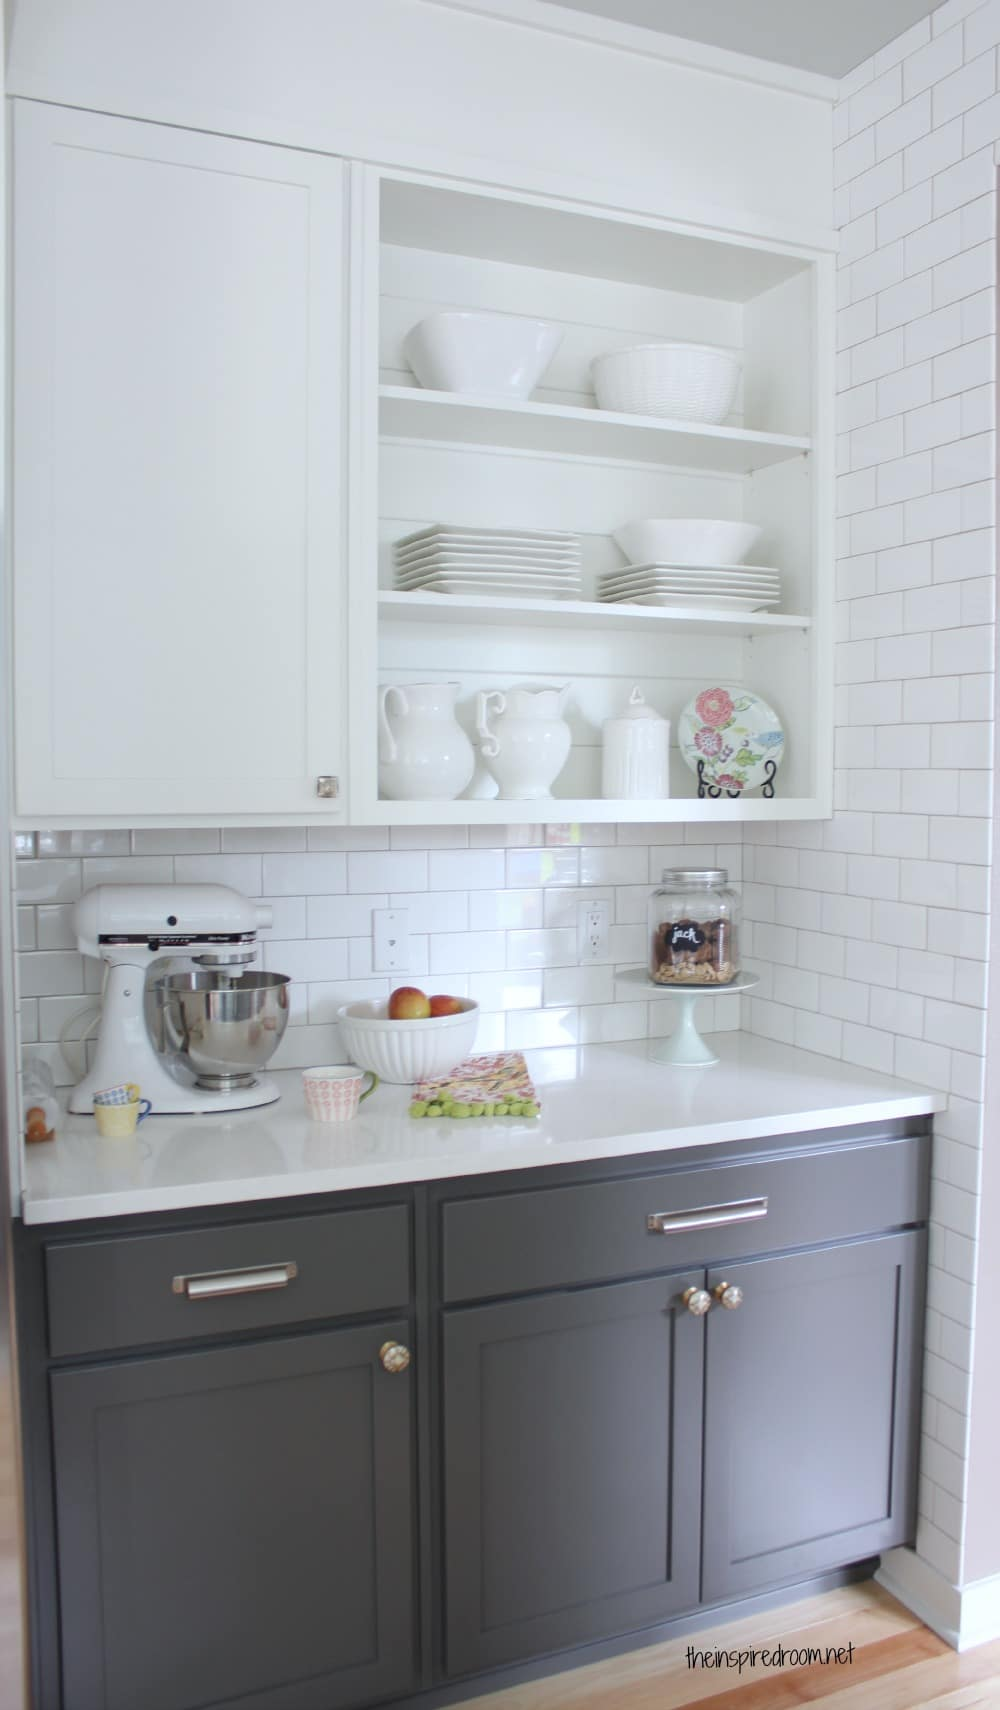 white subway tile subway tiles kitchens cabinets white kitchens